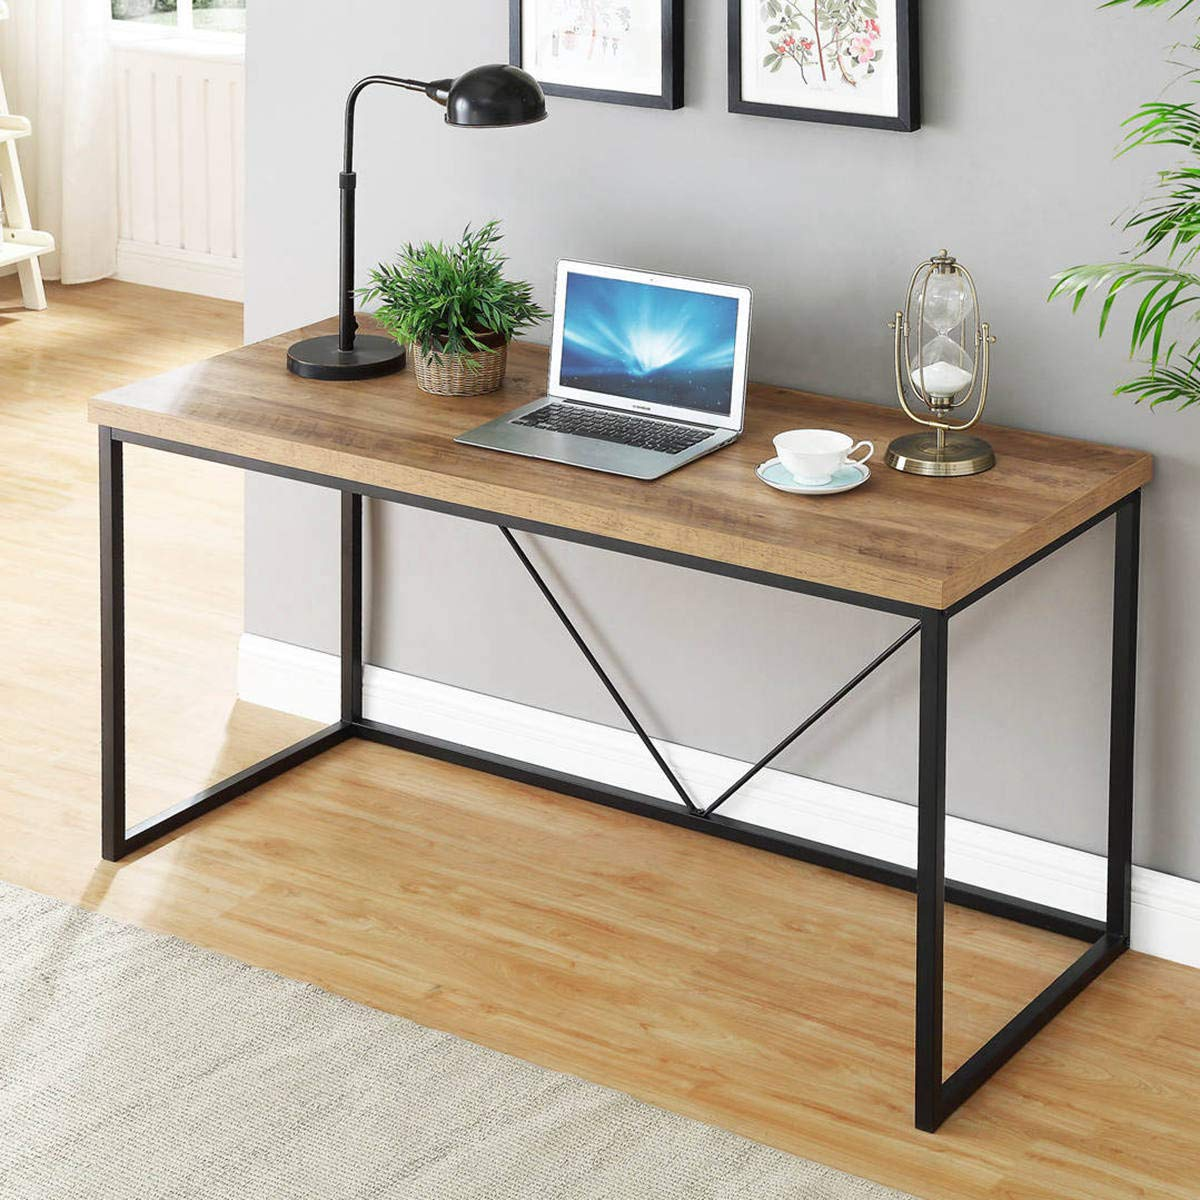 FOLUBAN Rustic Industrial Computer Desk,Wood and Metal Writing Desk, Vintage PC Table for Home Office, Oak 55 inch by Foluban (Image #1)